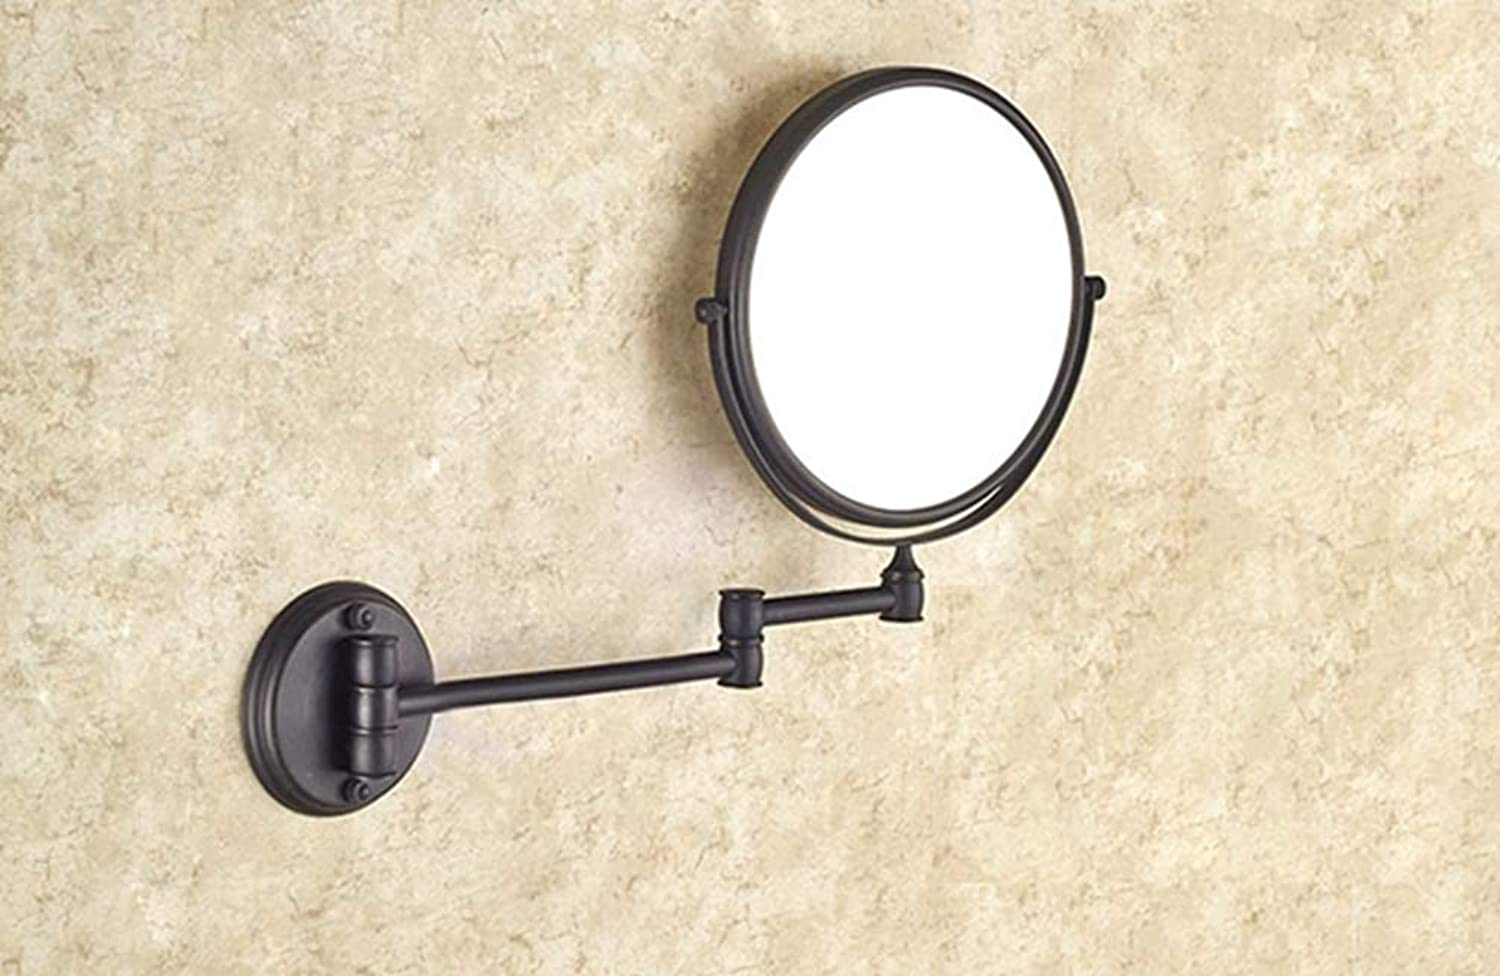 LUDSUY Bathroom Accessories Black Oil Rubbed Brass 8 Bathroom Shaving Beauty Makeup Magnify Mirror Dual Side Wall Mounted ∕ Bathroom Accessory